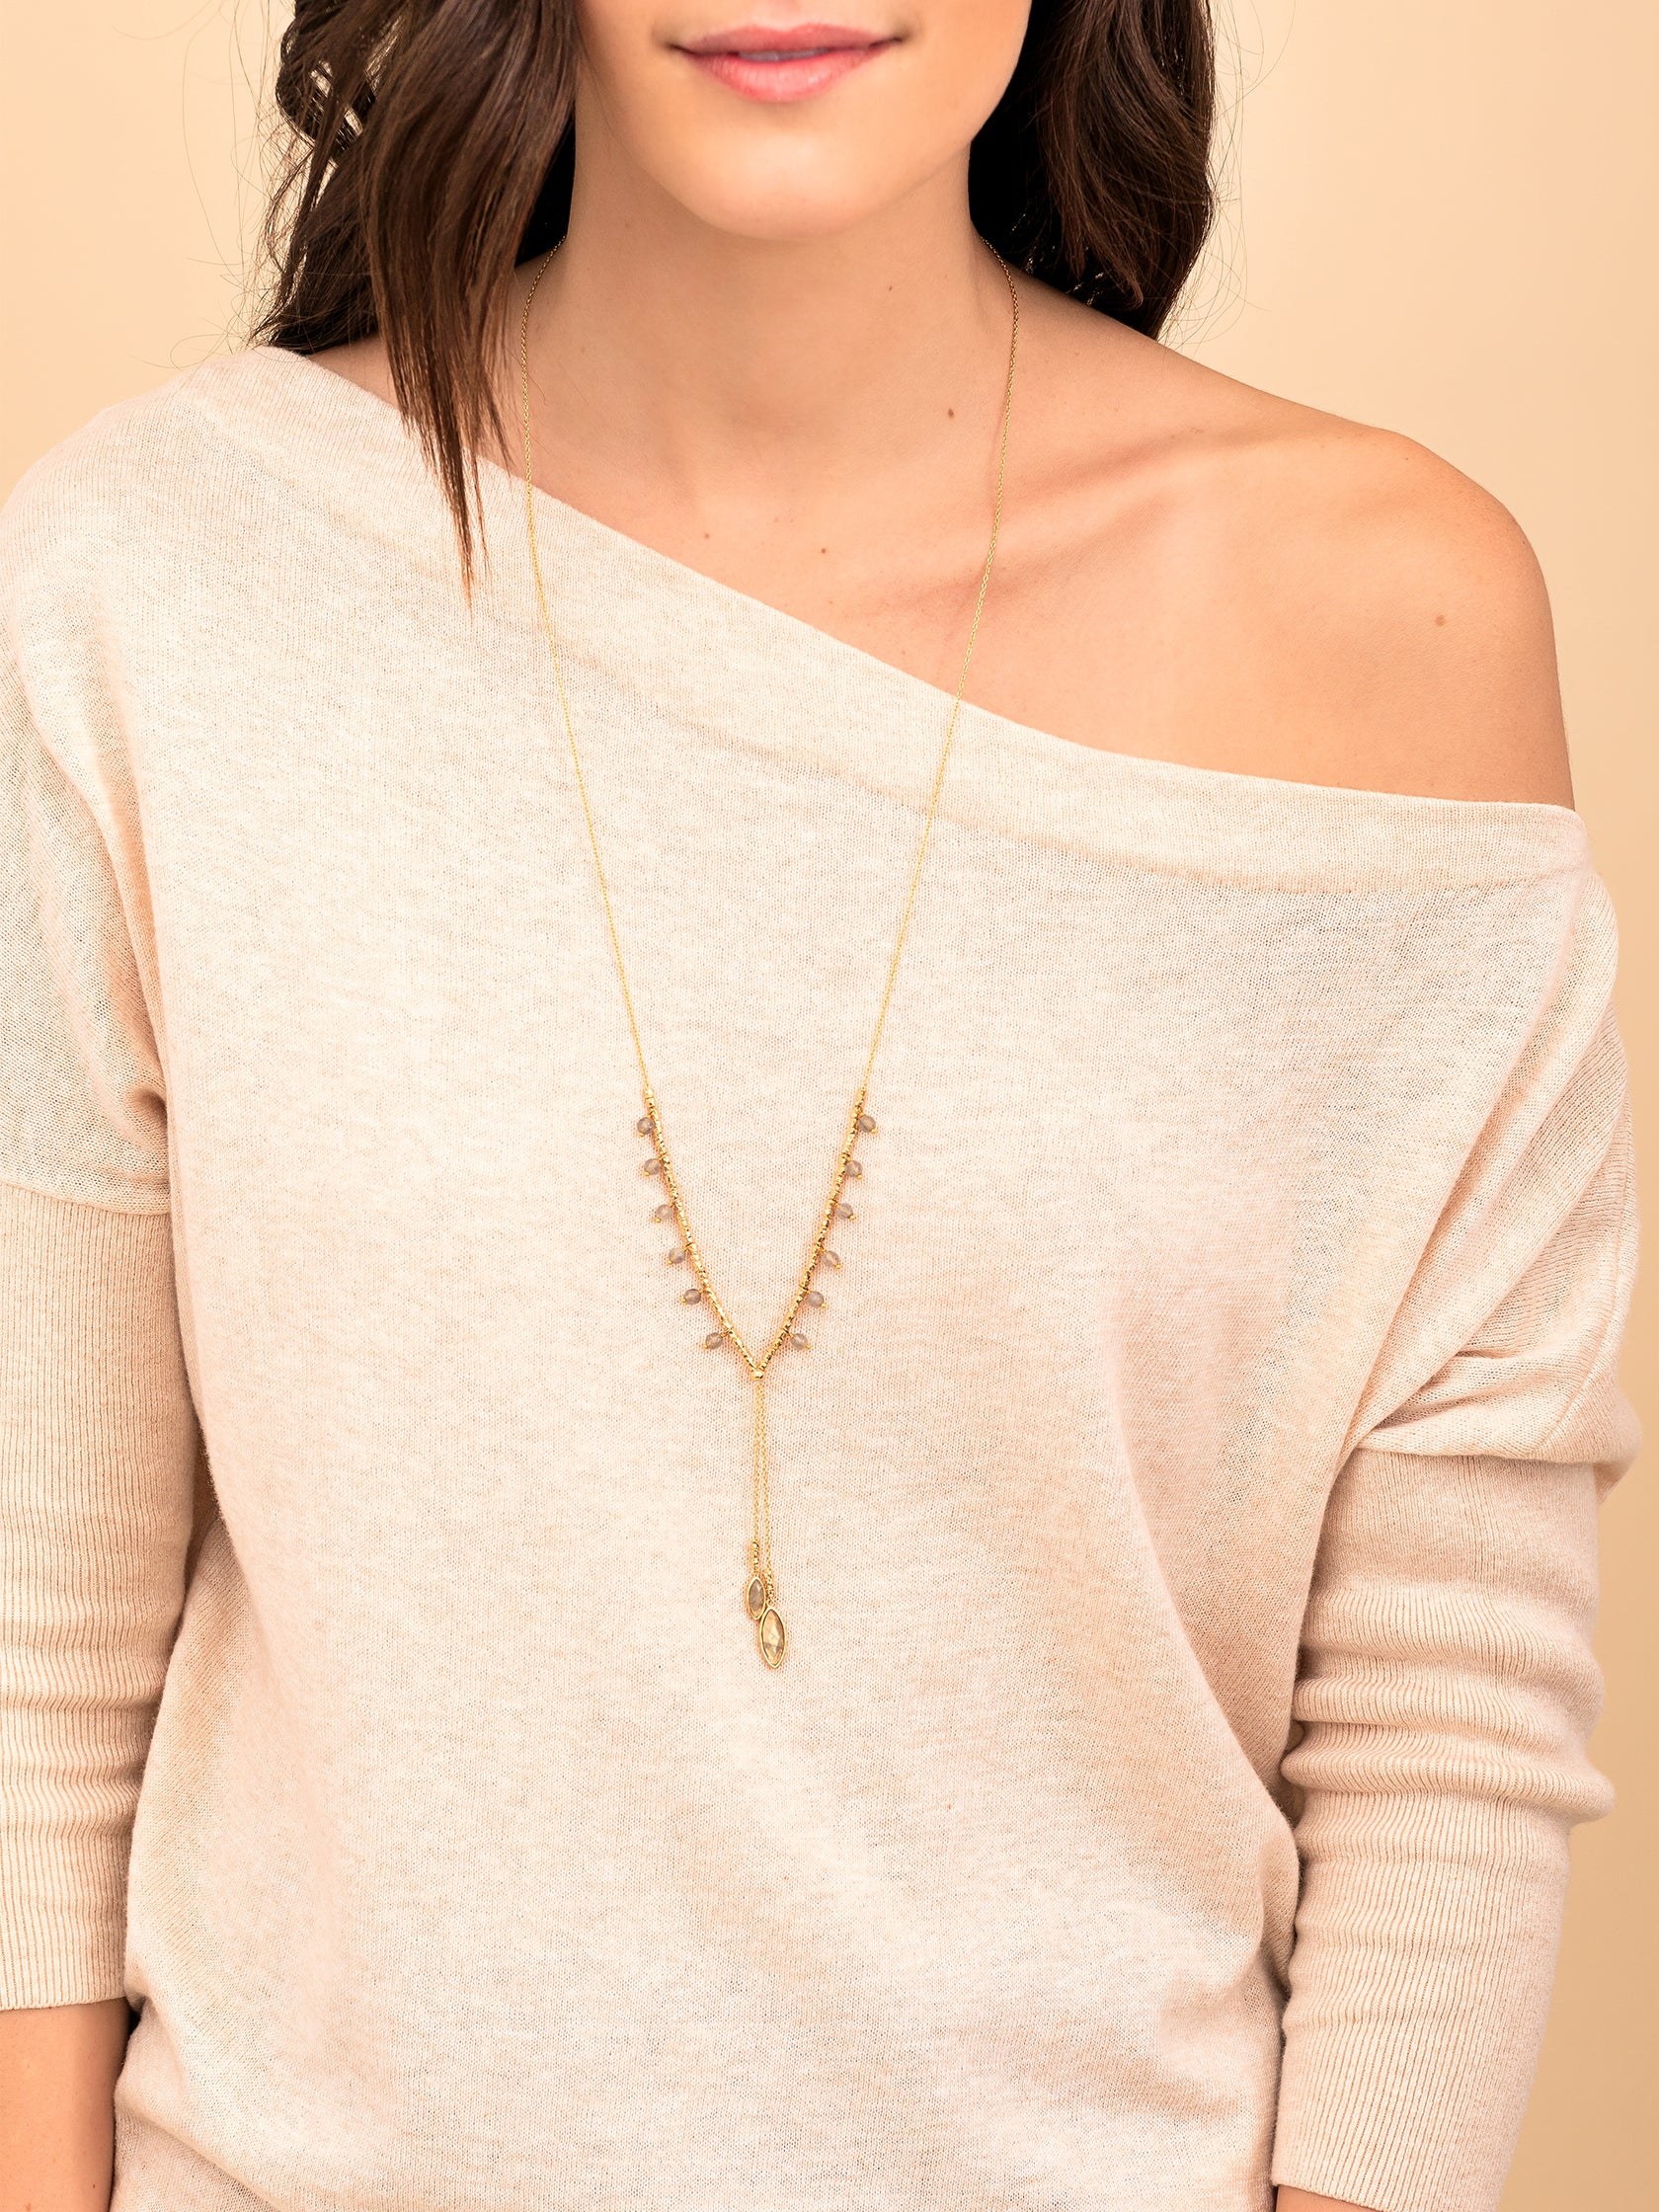 Girl outfit in a necklace rental from Gorjana called Palisades Labradorite Versatile Necklace